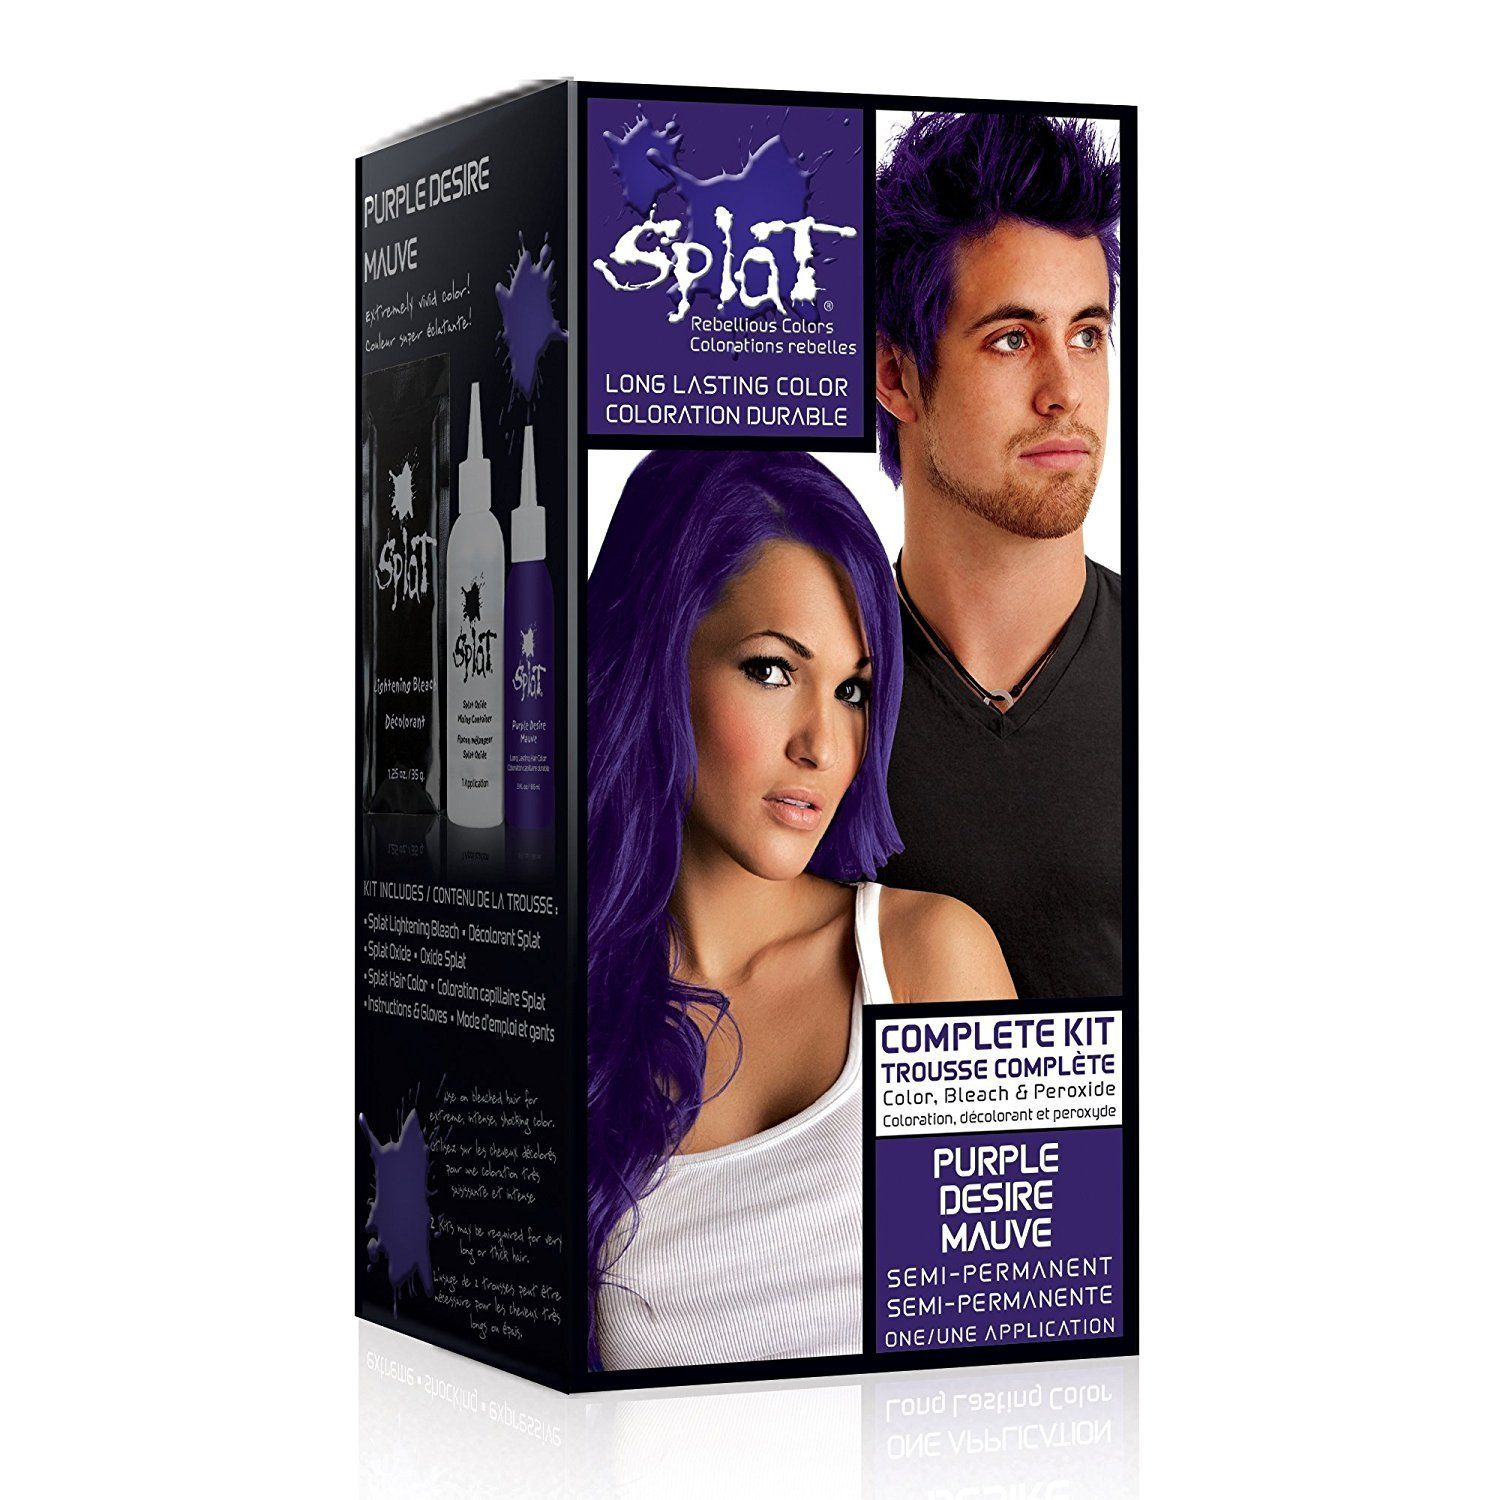 Splat Rebellious Colors Hair Coloring Complete Kit Purple Desire This Is An Amazon Affiliate Link Splat Hair Dye Dyed Hair Purple Semi Permanent Hair Dye